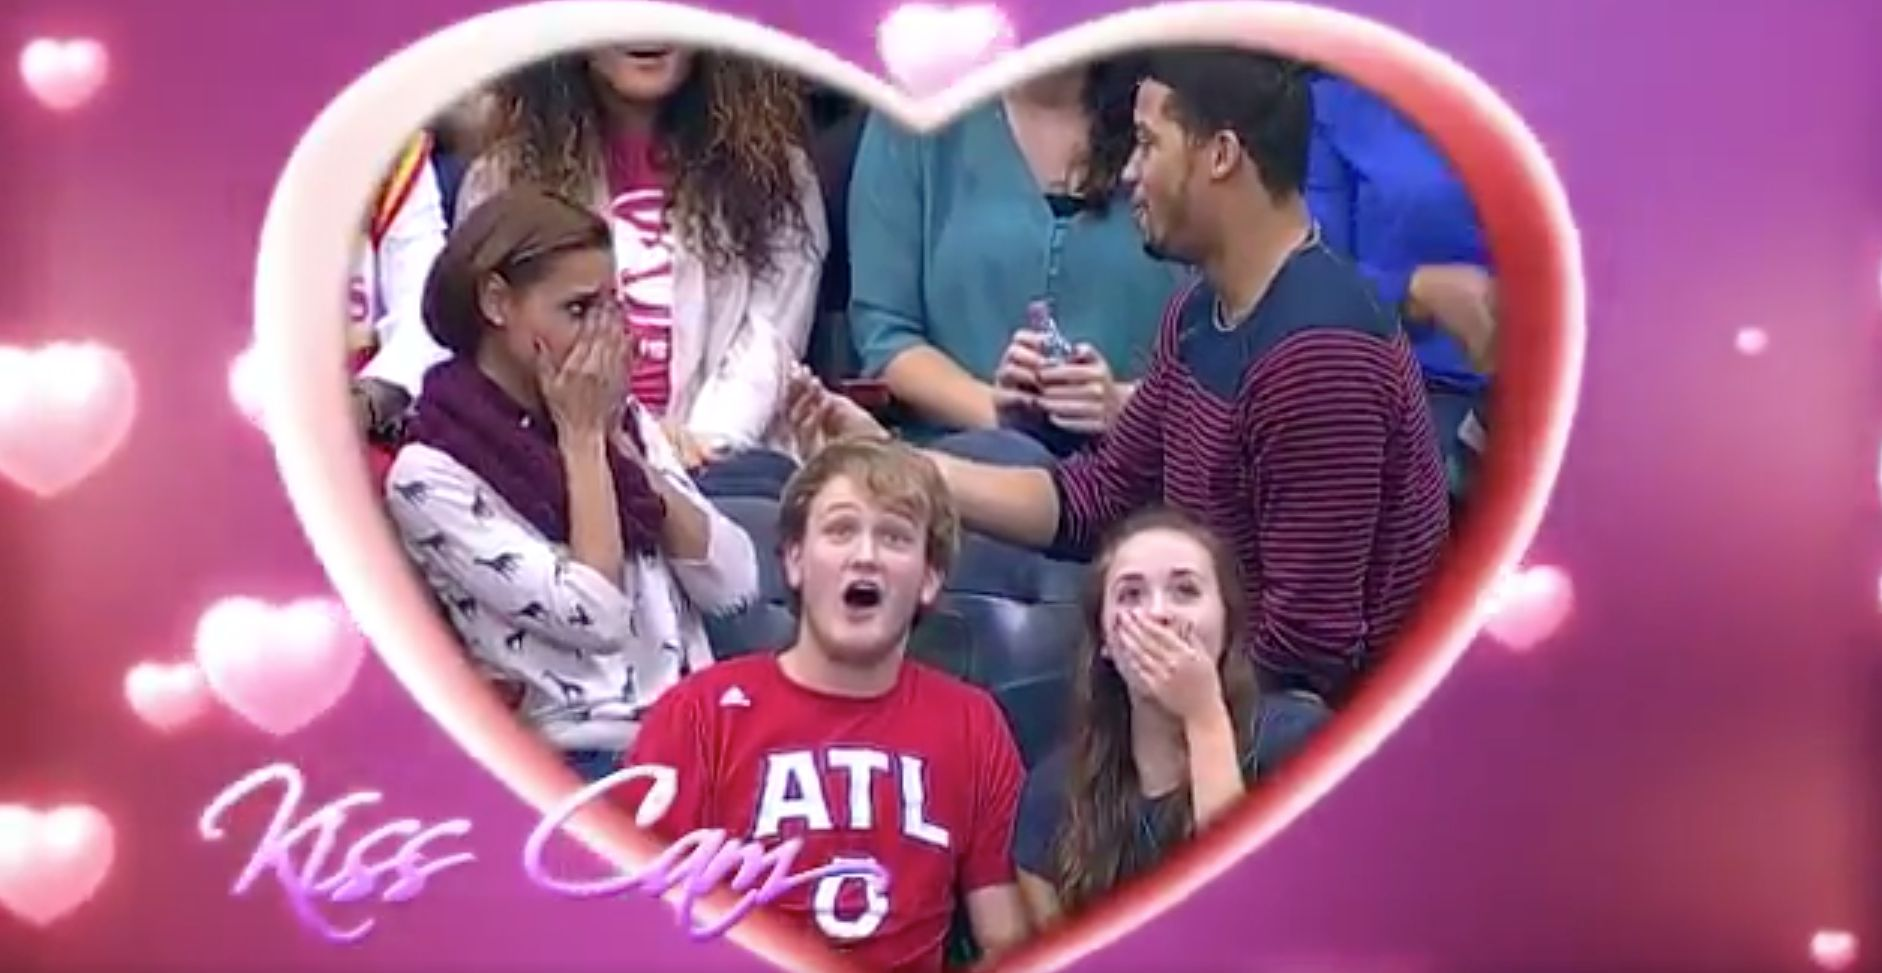 Boyfriend's Kiss Cam Proposal At Basketball Game Does Not End